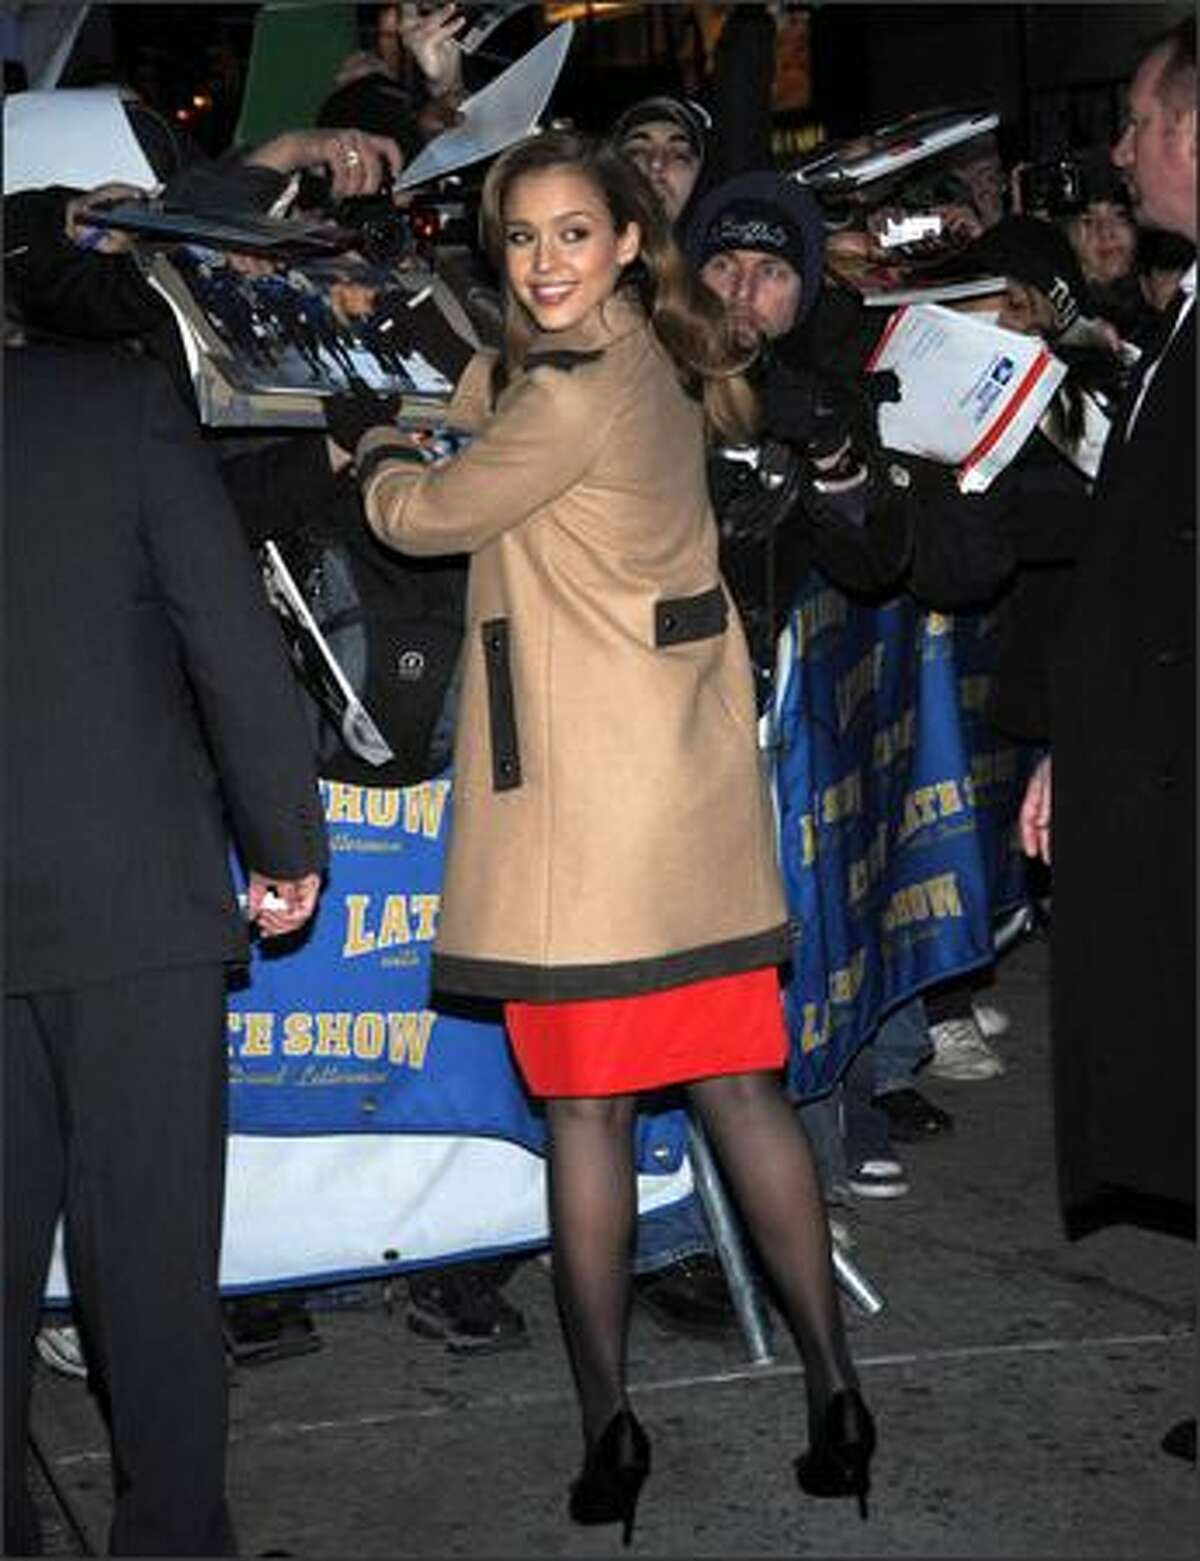 Actress Jessica Alba leaves 'The Late Show With David Letterman' at the Ed Sullivan Theater in New York City.